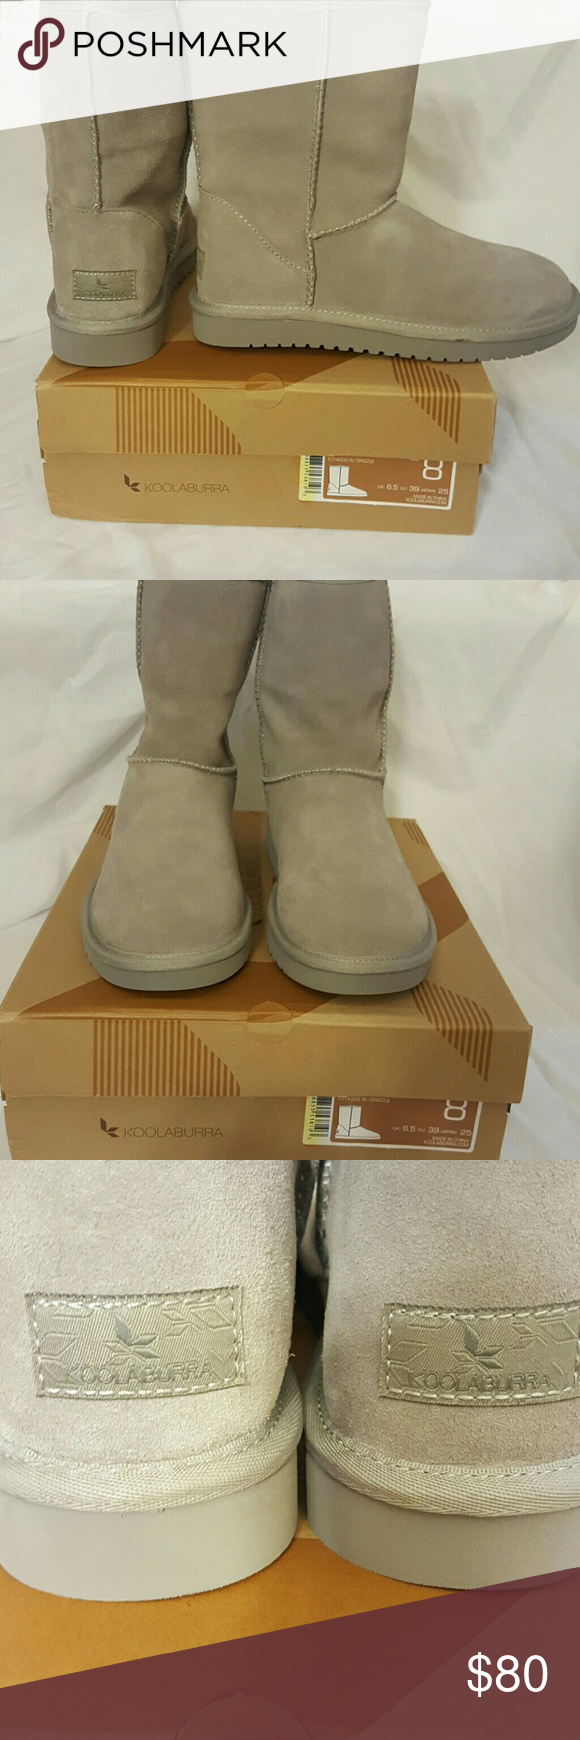 74eae5e514c SHORT KOOLABURRA BY UGG BOOTS last chance! Yes! These are made by ugg.